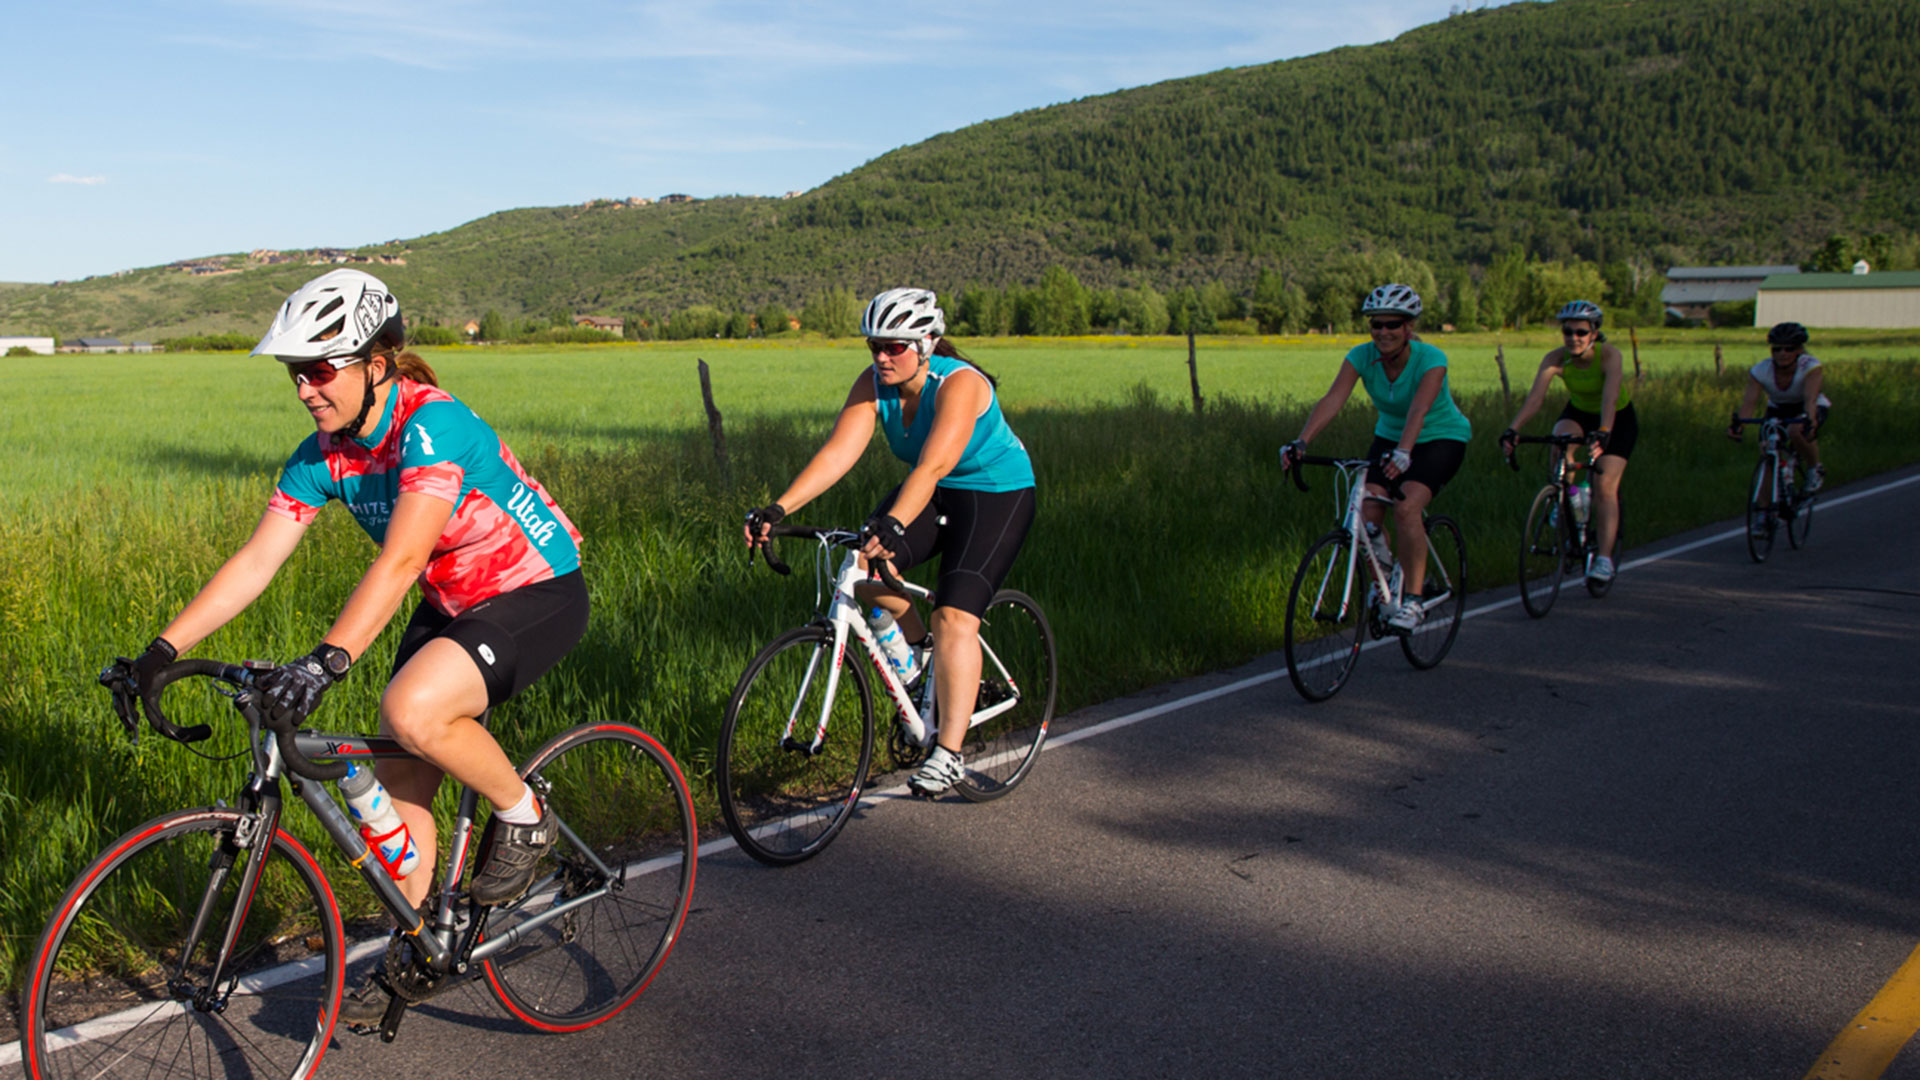 Guided Local Road Biking Tour from White Pine Touring in Park City, UT.